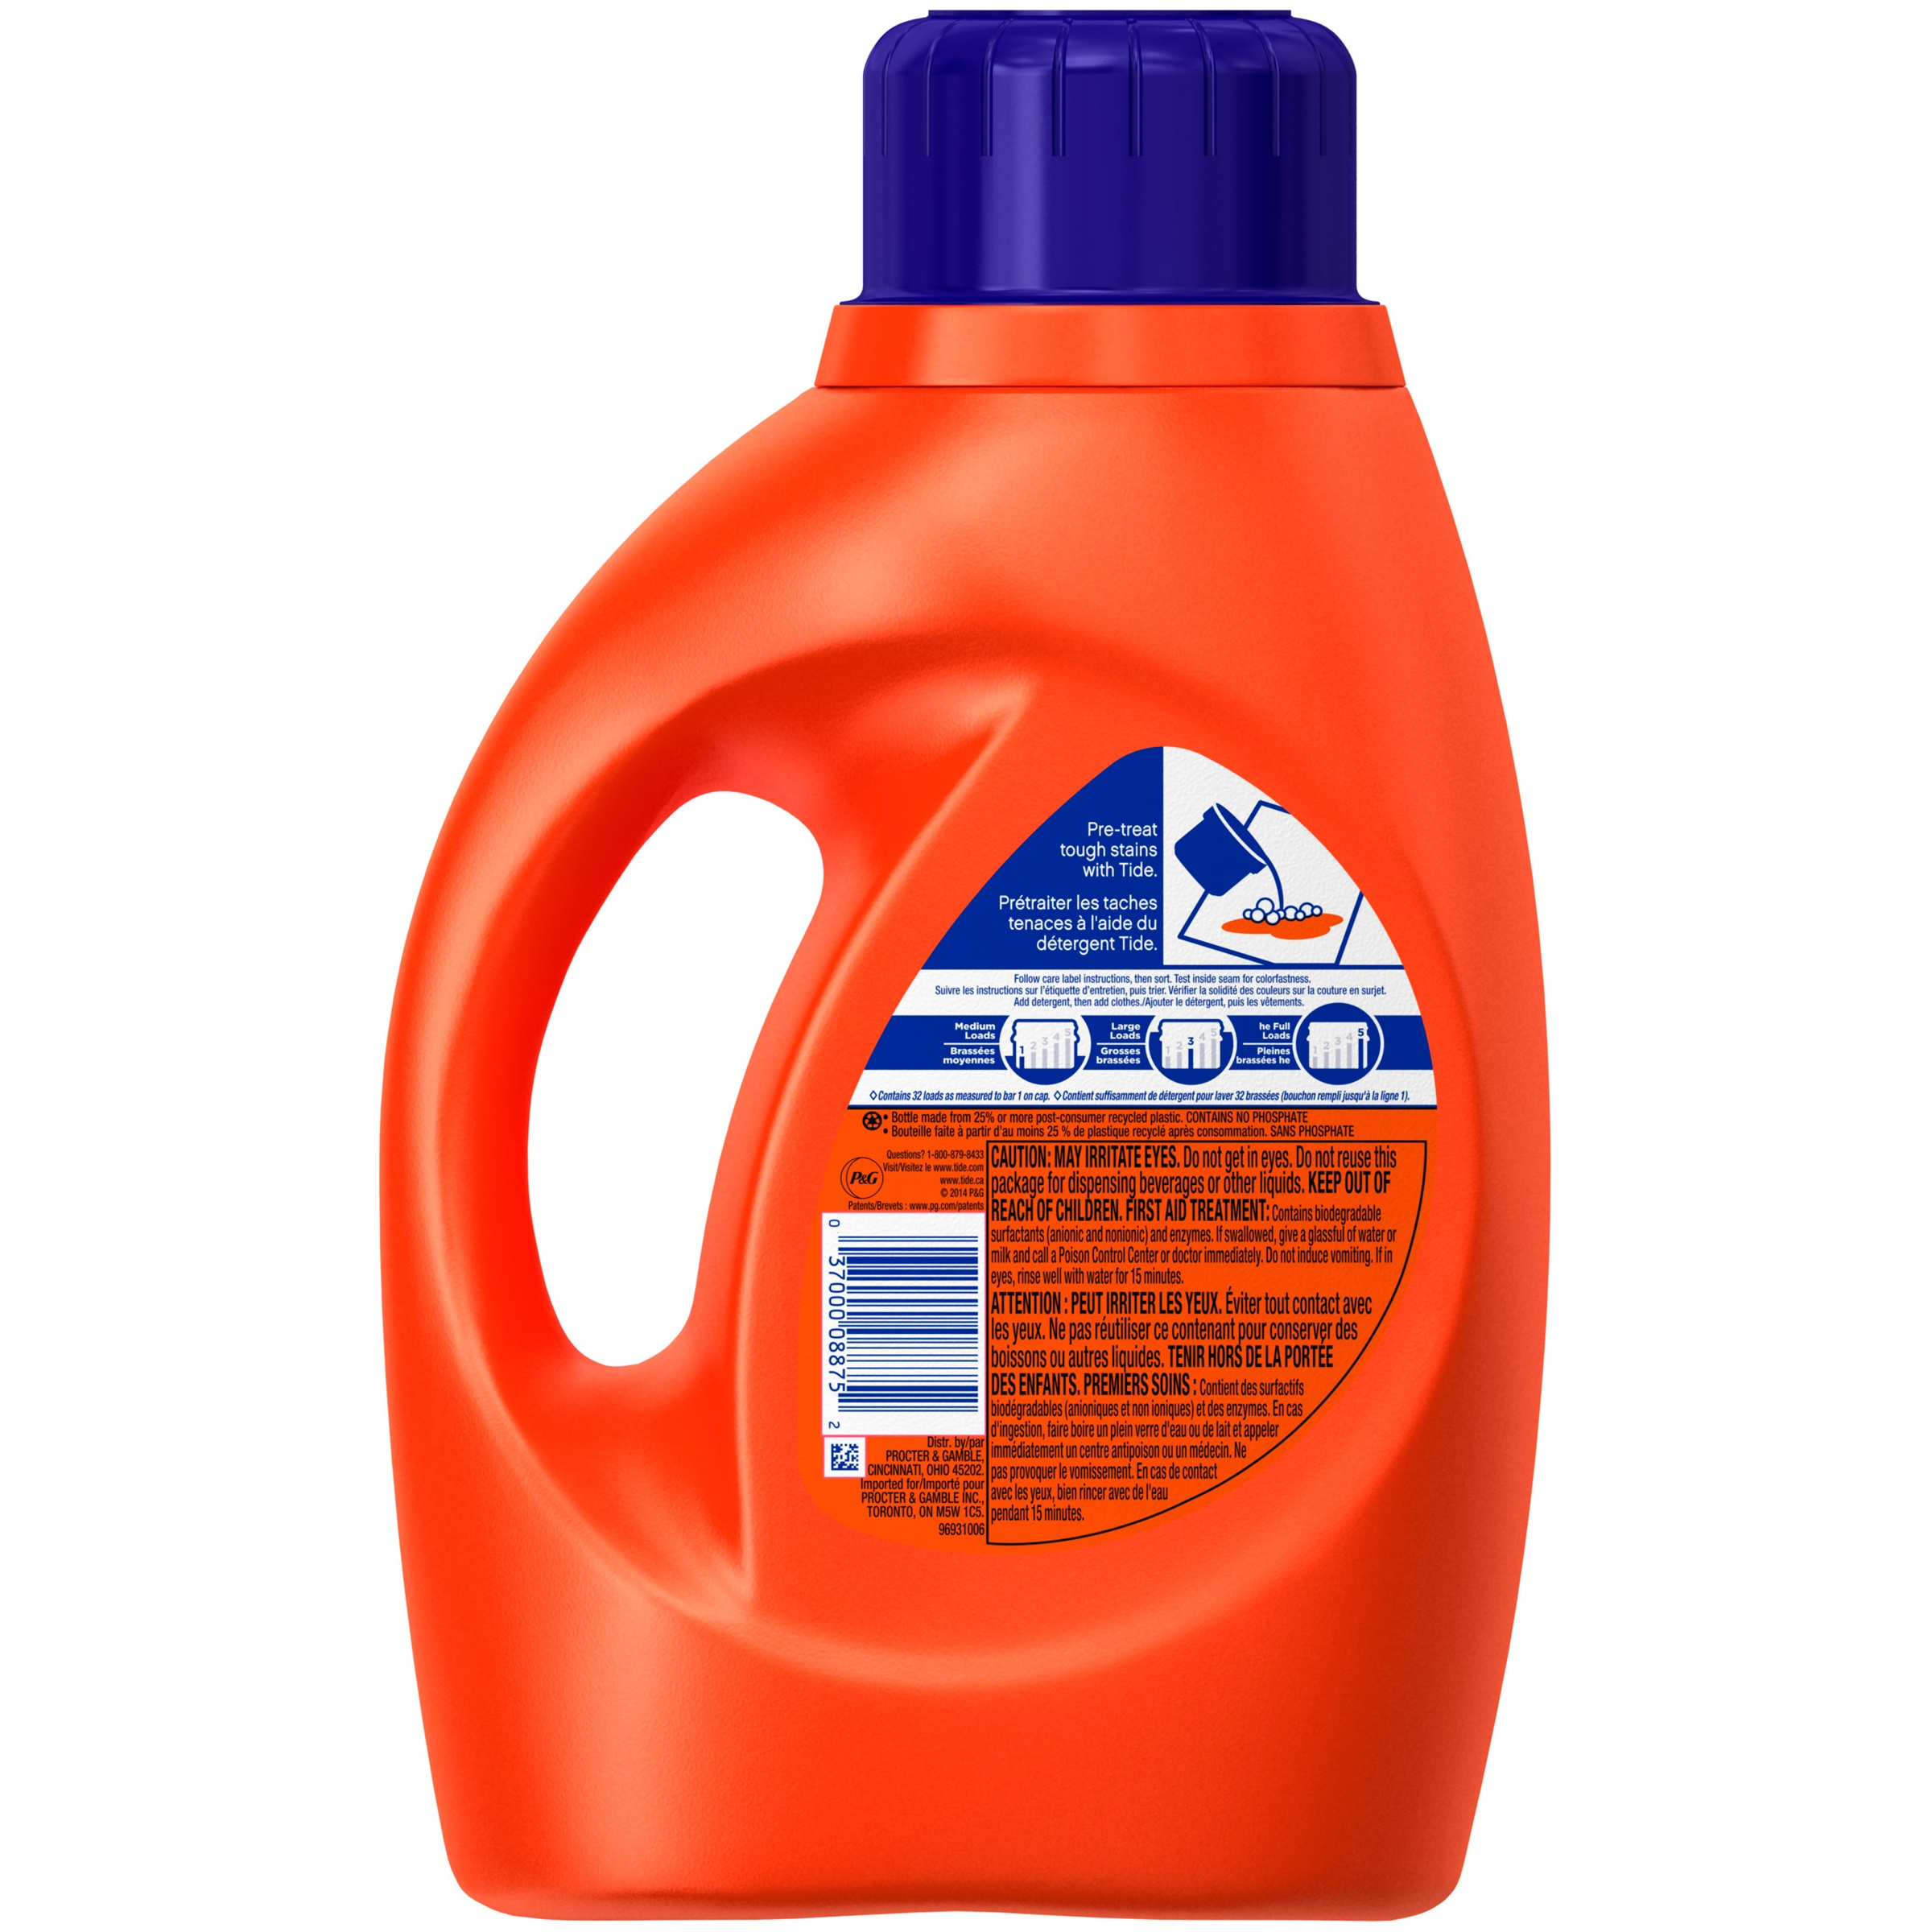 How Much He Detergent To Use Tide Original Liquid Laundry Detergent 50 Fl Oz Plastic Jug